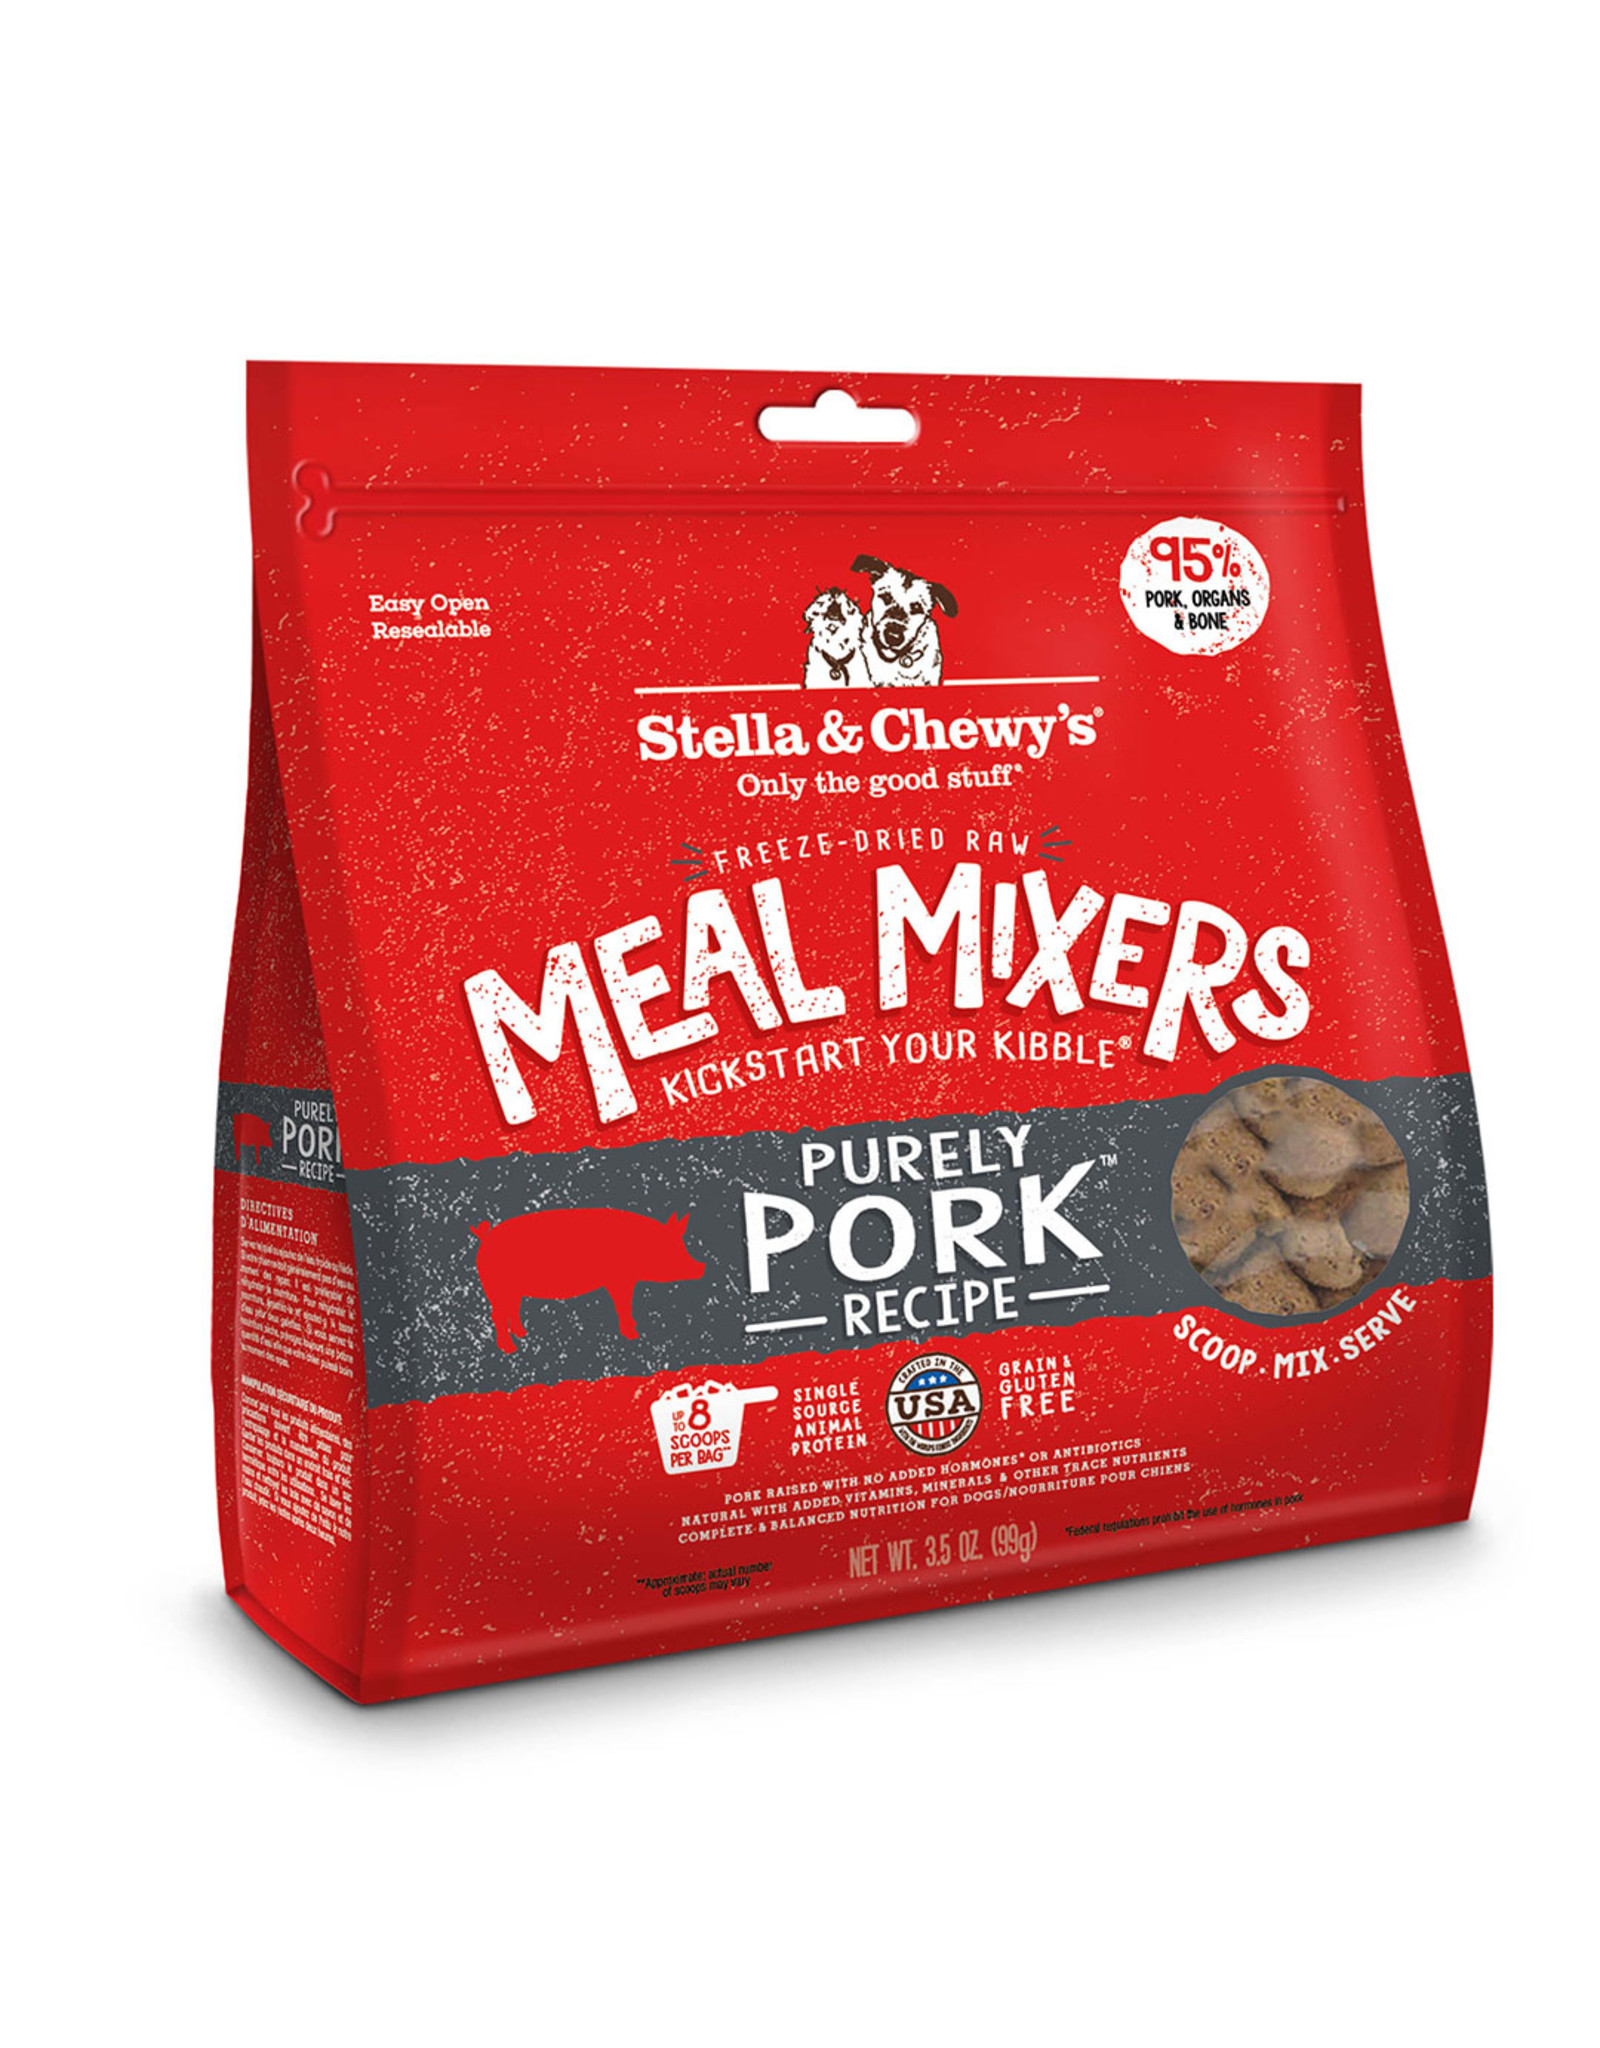 Stella & Chewy's Purely Pork Meal Mixers Freeze-Dried Raw Dog Food